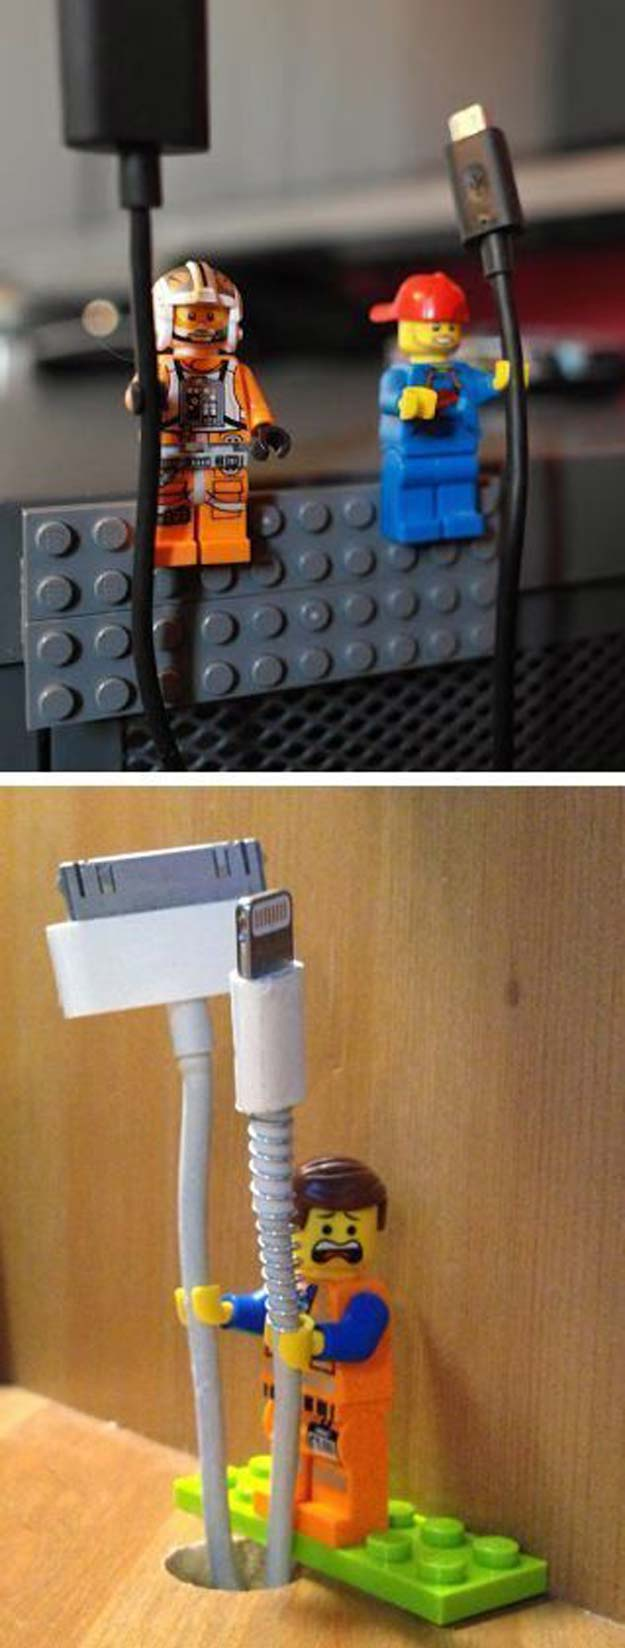 Fun DIY Ideas for Your Desk - DIY Lego Man Cord Holder - Cubicles, Ideas for Teens and Student - Cheap Dollar Tree Storage and Decor for Offices and Home - Cool DIY Projects and Crafts for Teens